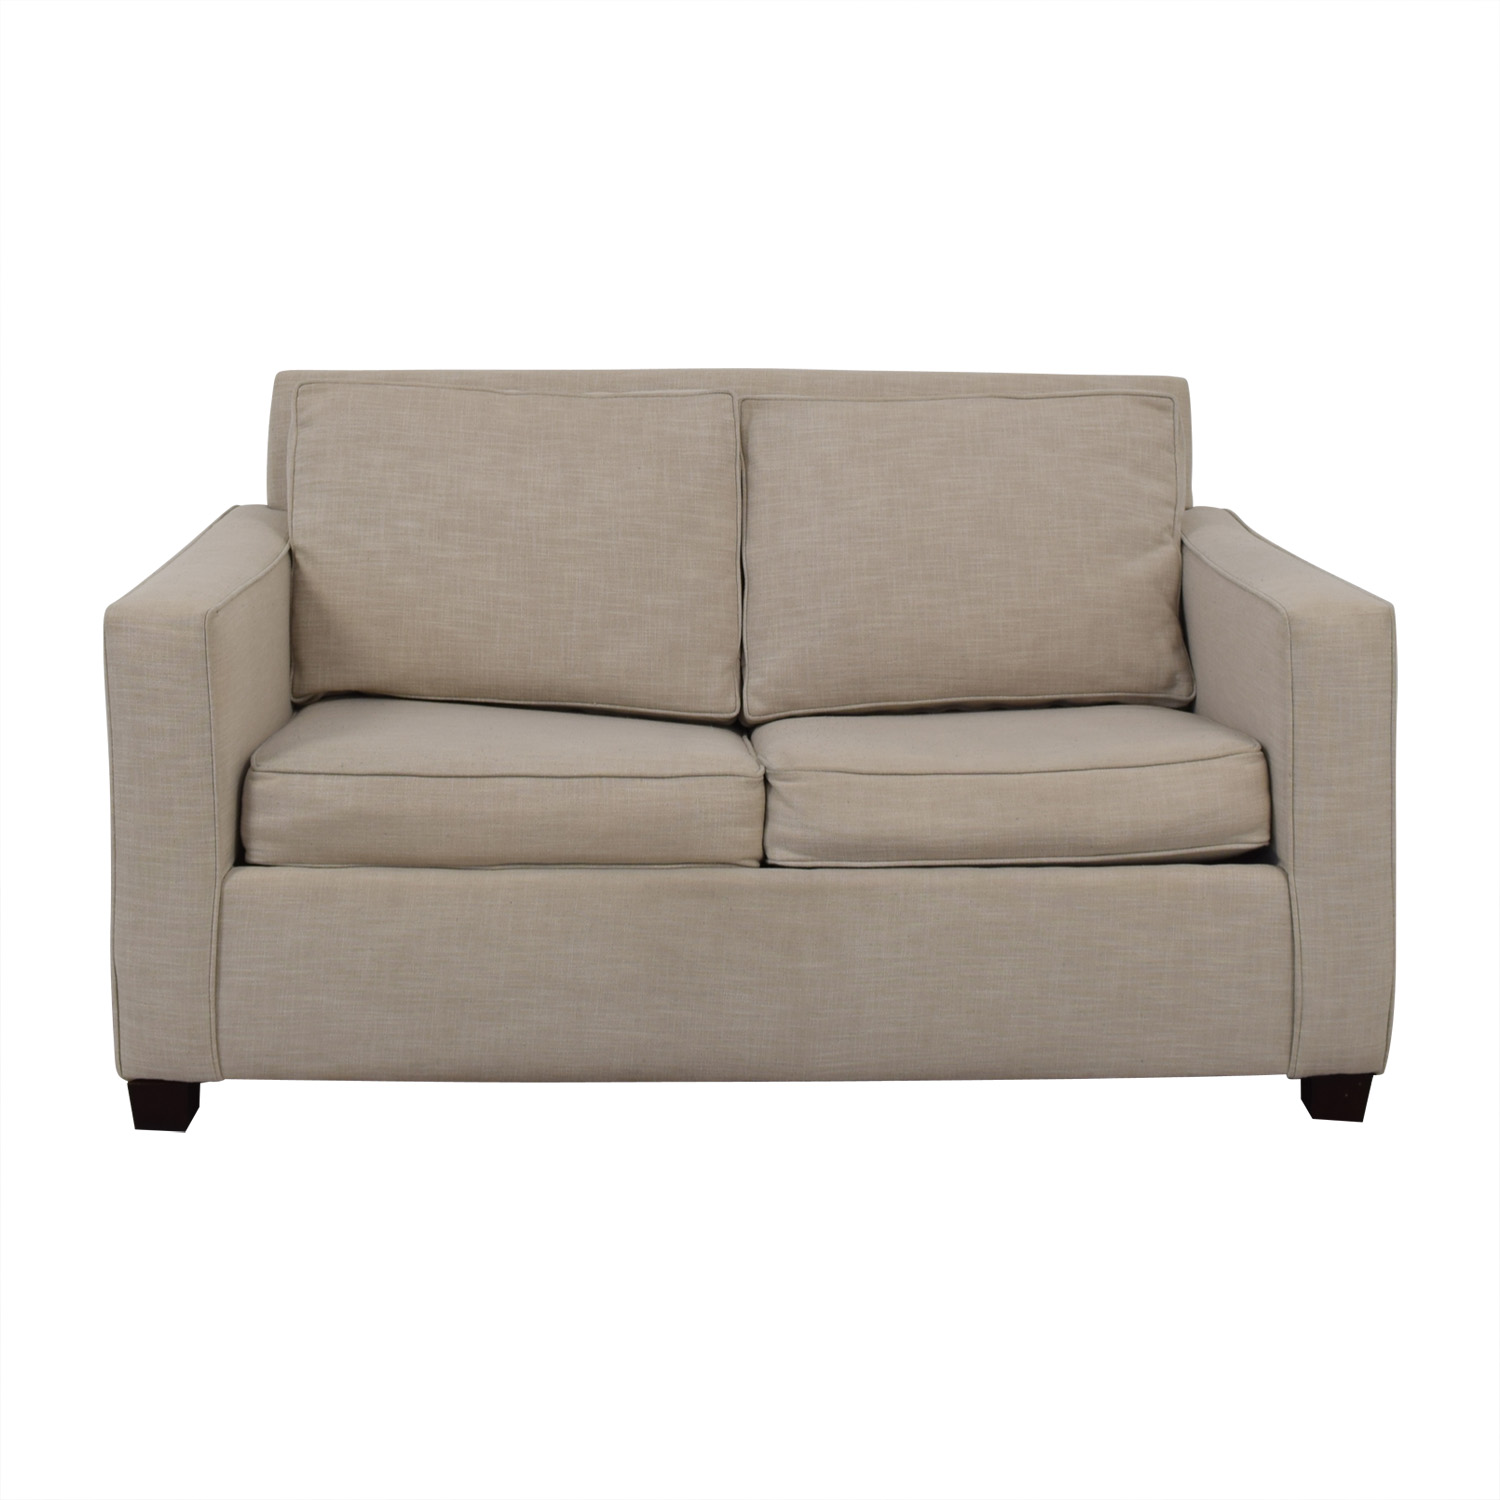 West Elm West Elm Henry Grey Loveseat with Twin Pullout Convertible used